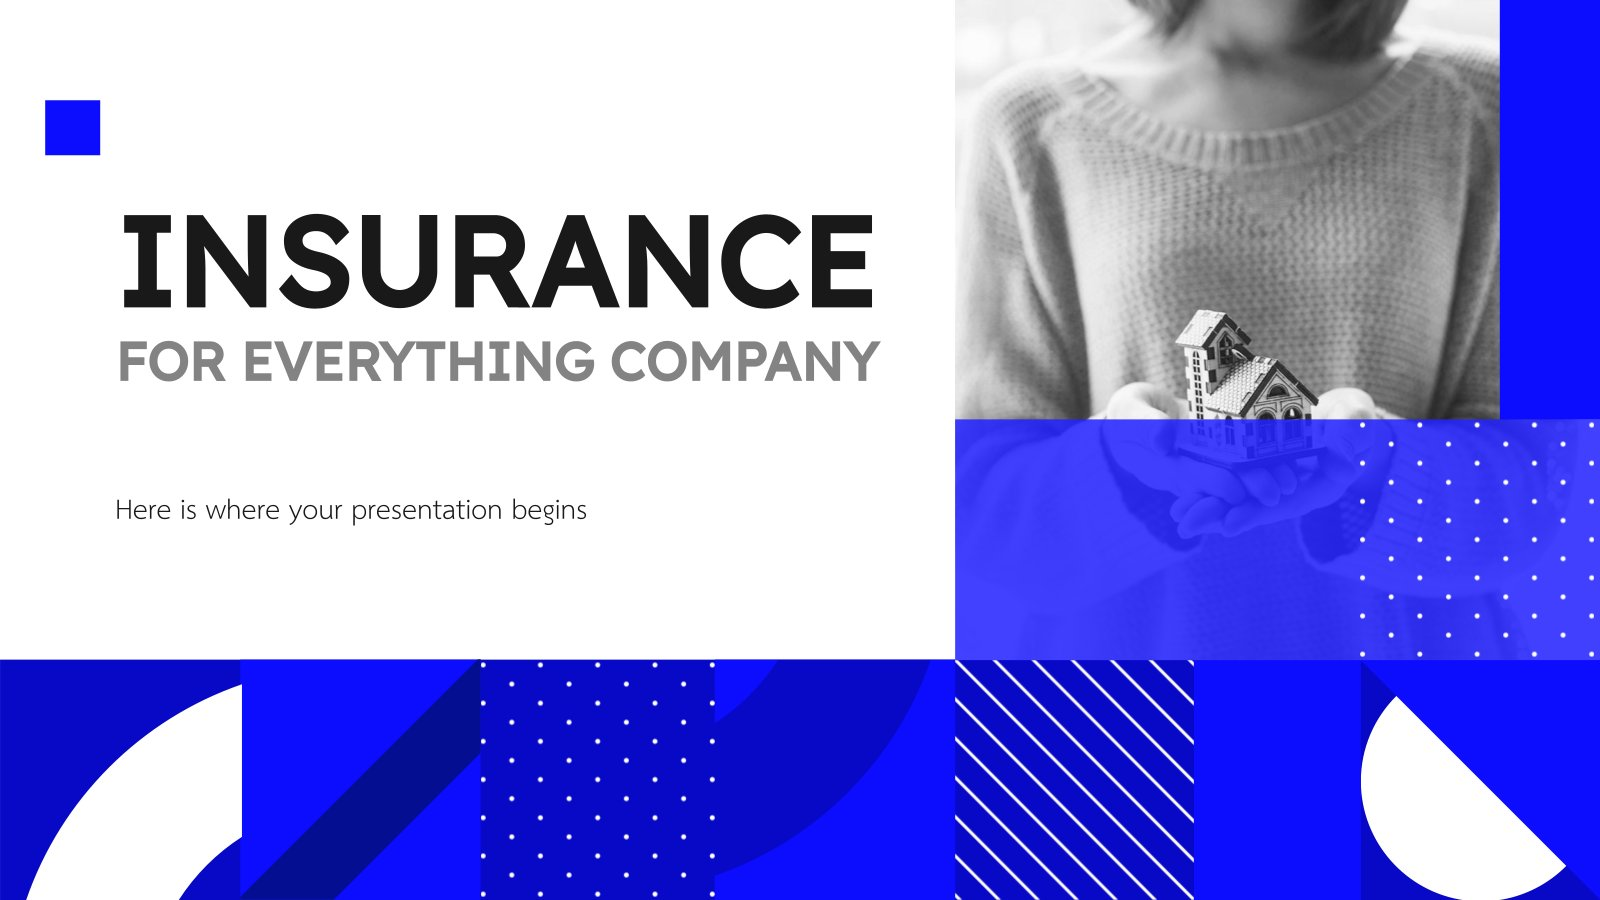 Insurance for Everything Company presentation template